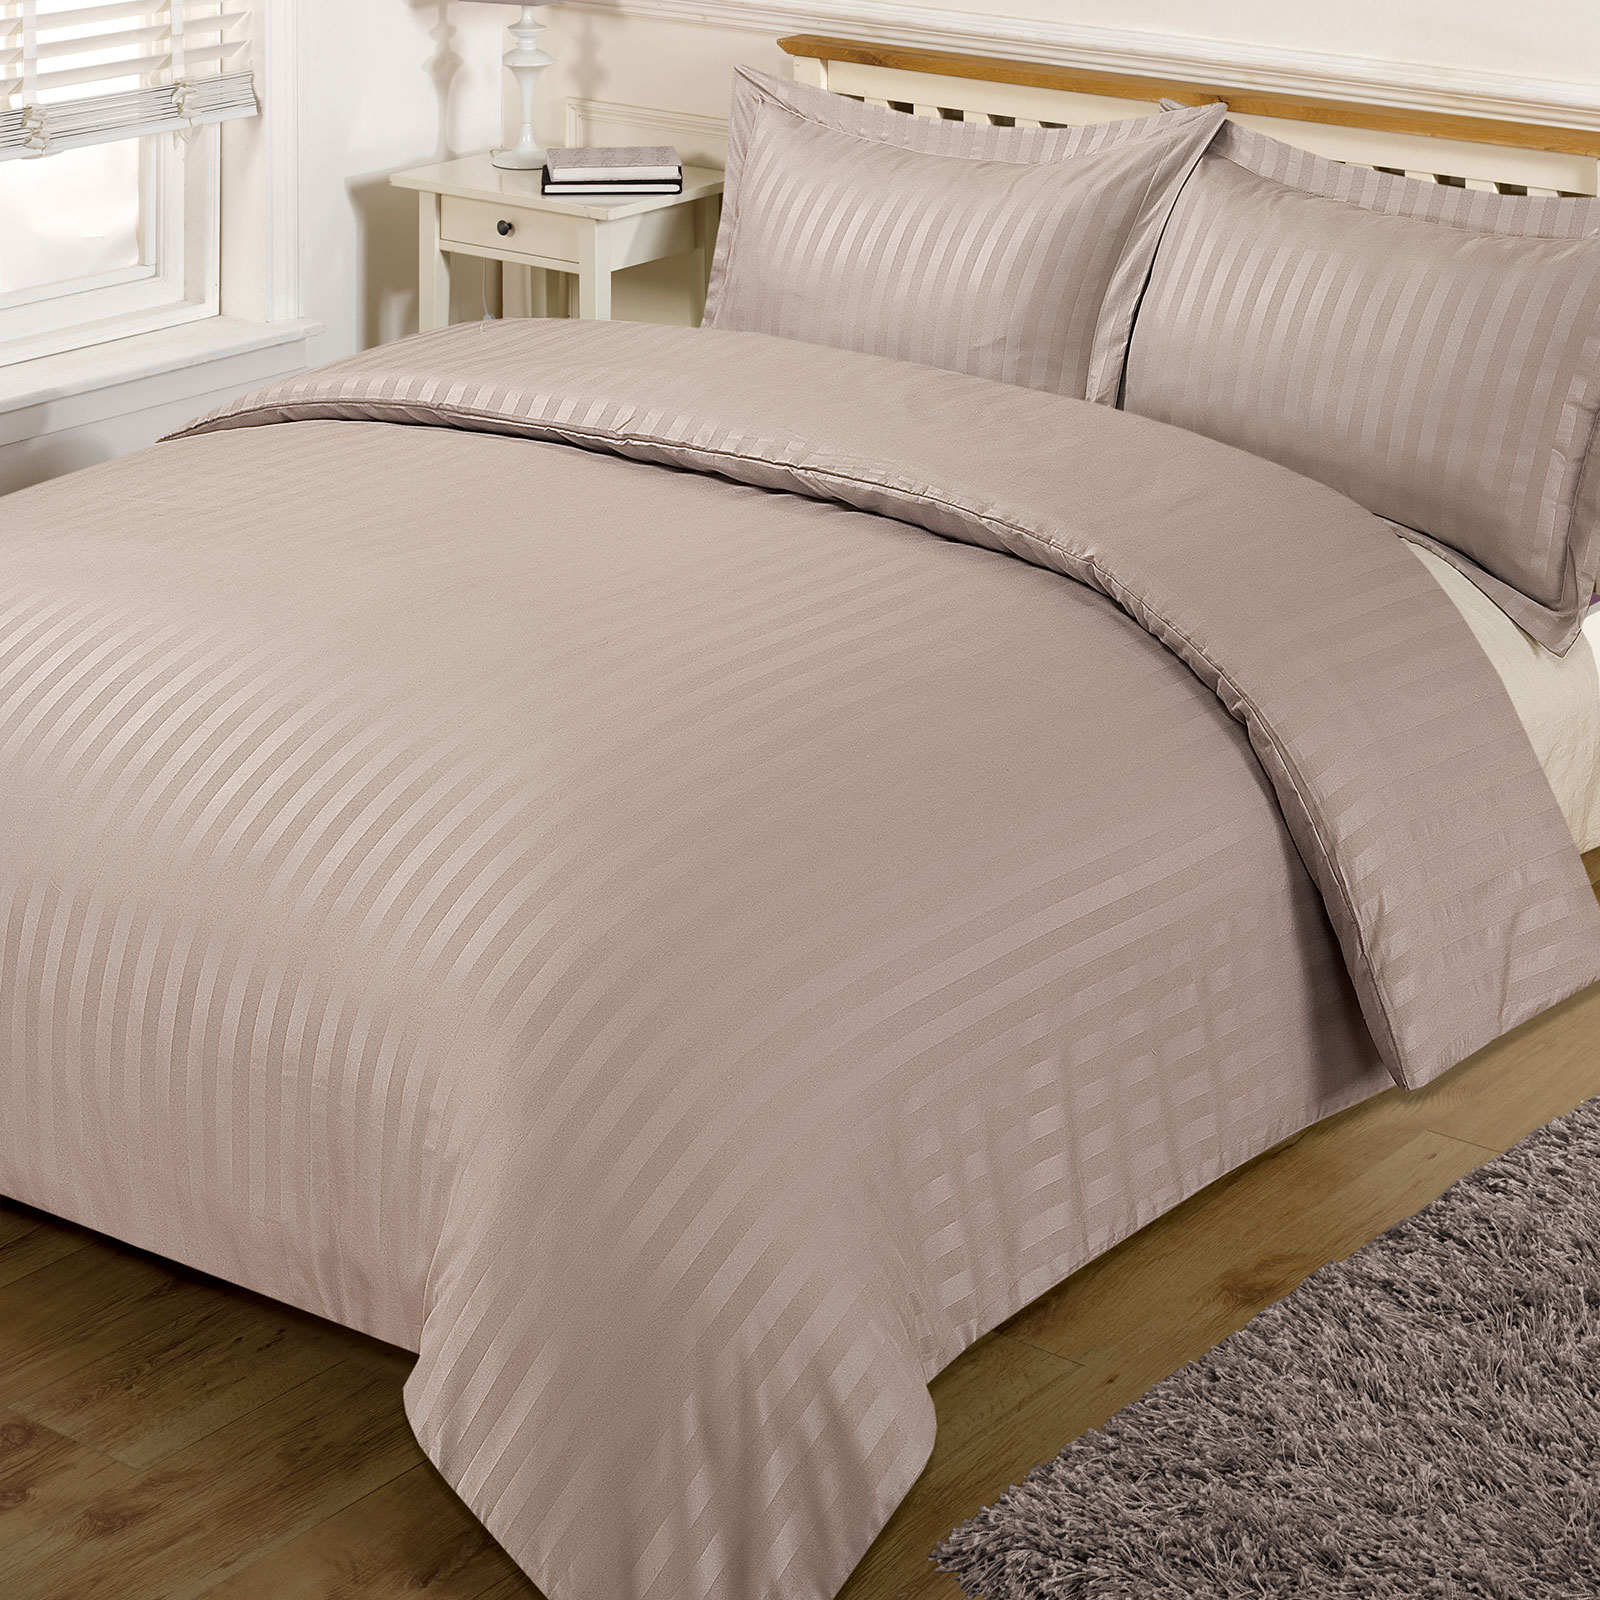 Shop for a wide assortment of duvet covers from our other brands. GIRLS DUVET COVERS at Pottery Barn Kids BOYS DUVET COVERS at Pottery Barn Kids. TEEN GIRLS DUVET COVERS at PBteen TEEN BOYS DUVET COVERS a t PBteen. LUXURY DUVET COVERS at.